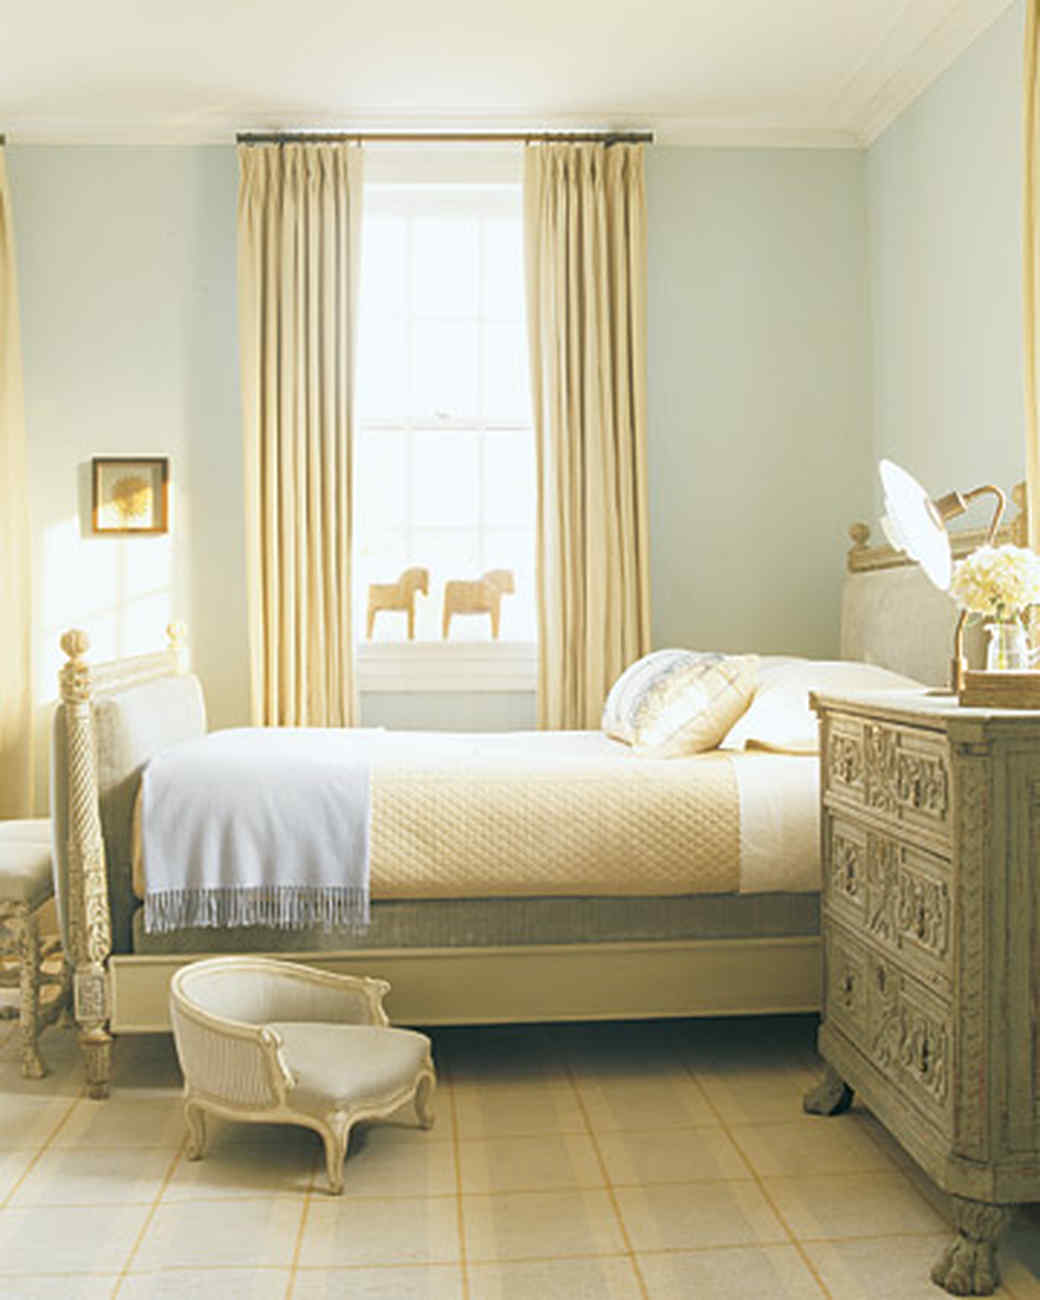 Swedish Bedrooms home tour: american colonial | martha stewart